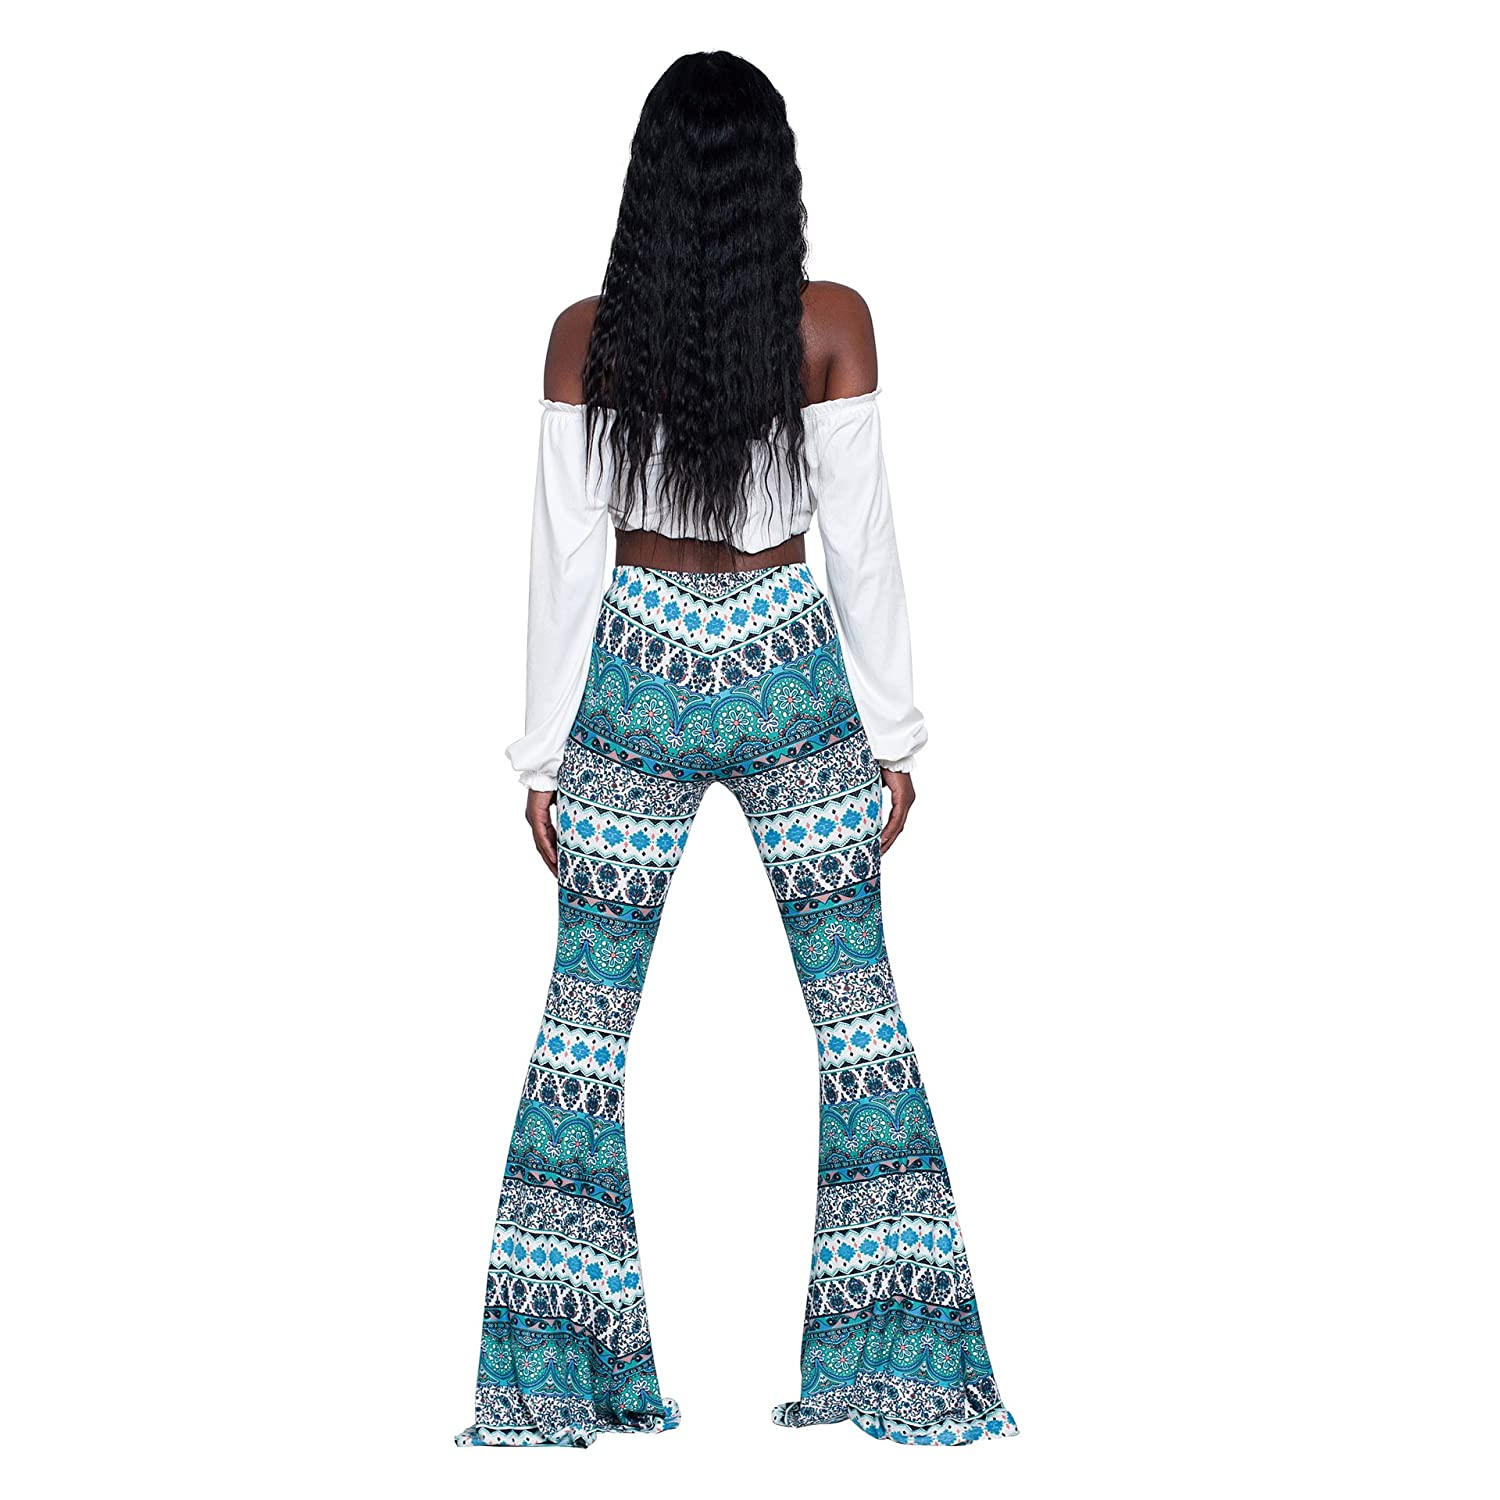 81bd7640f71797 Women's Sexy Glitter Sequin Wide Leg Color Block Bell Bottom High Waisted  Flared Stretch Palazzo Pants Plus Size at Amazon Women's Clothing store: